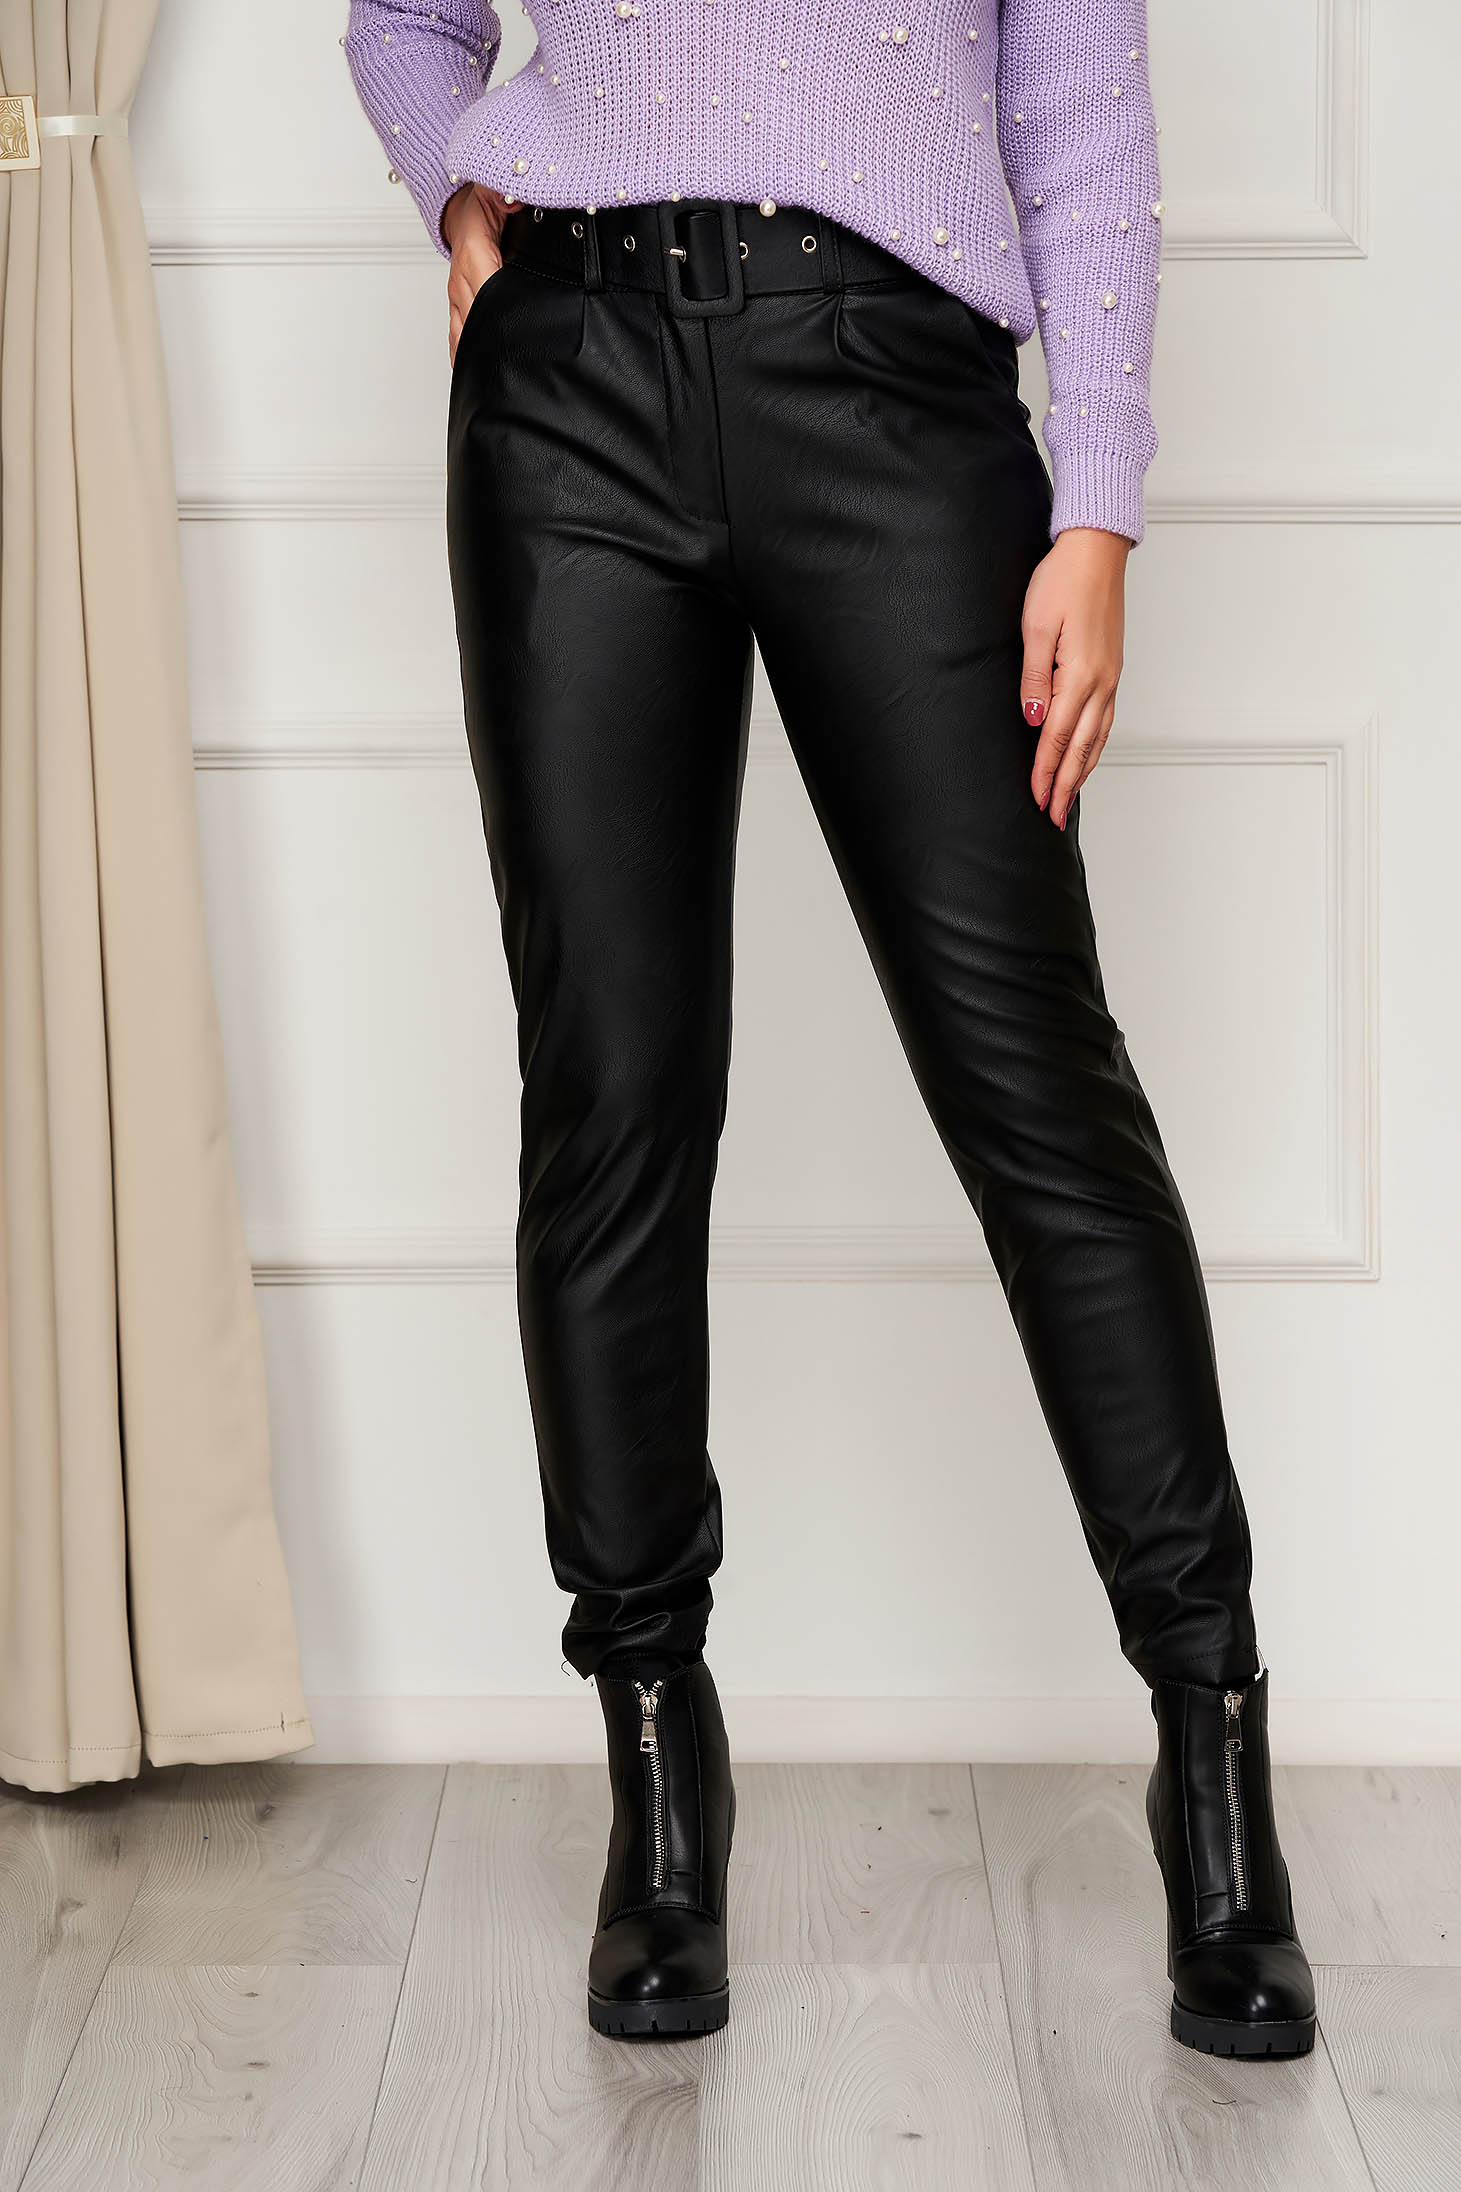 Black trousers casual conical from ecological leather with pockets high waisted